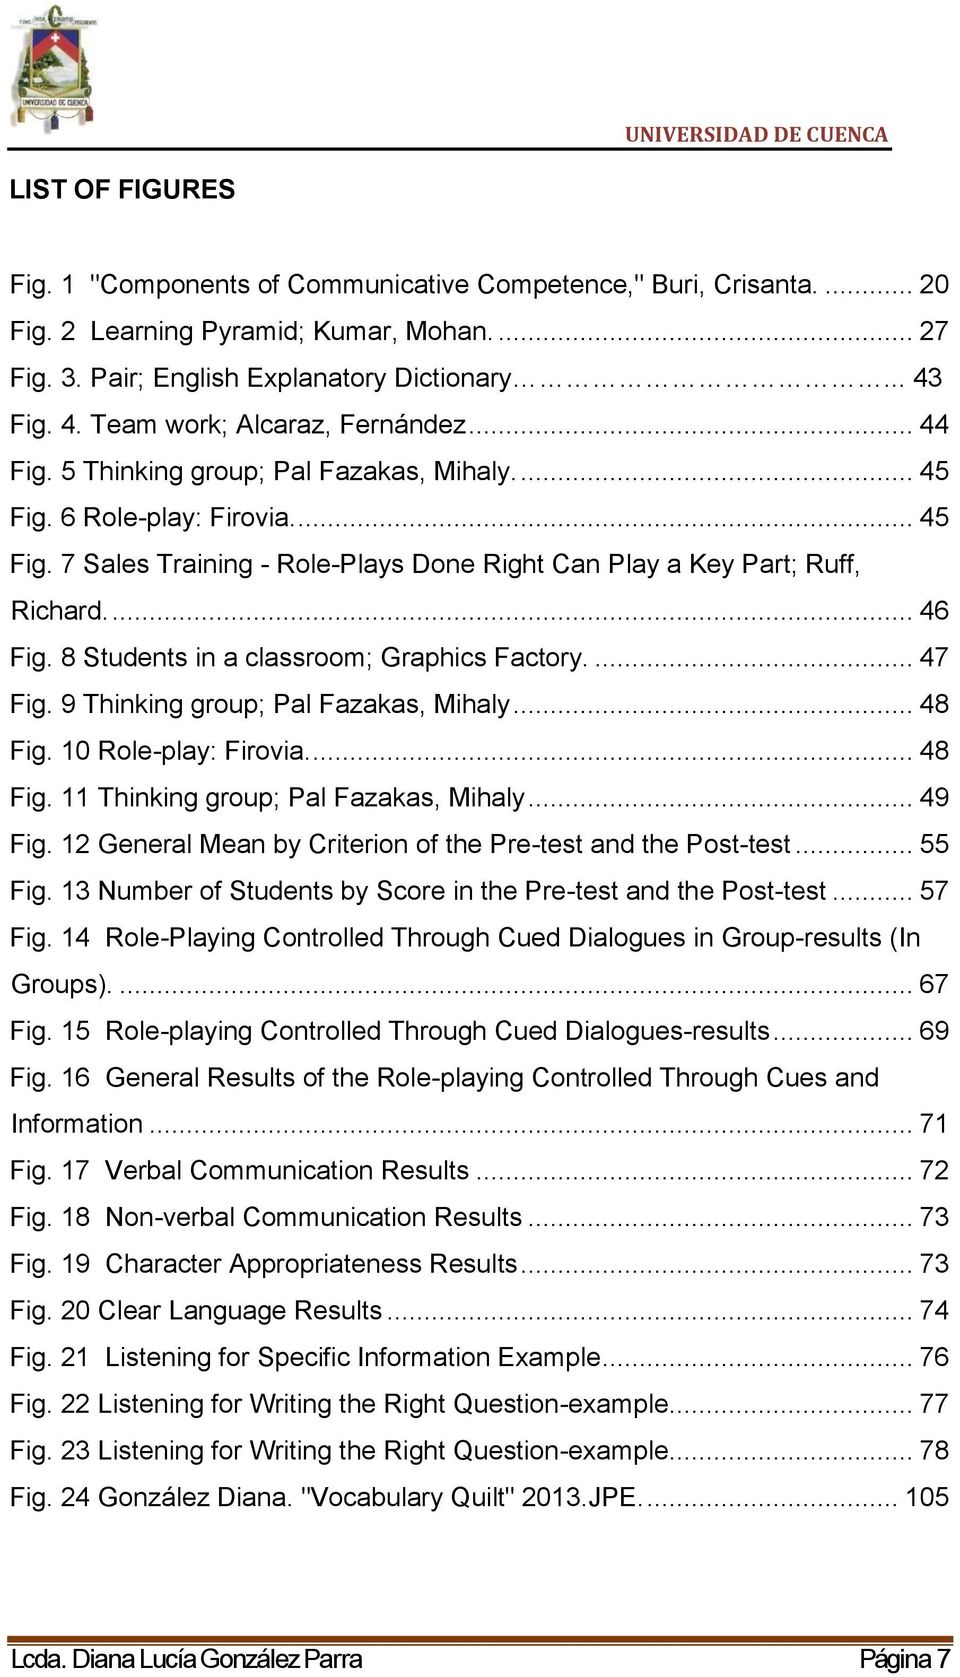 ... 46 Fig. 8 Students in a classroom; Graphics Factory.... 47 Fig. 9 Thinking group; Pal Fazakas, Mihaly... 48 Fig. 10 Role-play: Firovia.... 48 Fig. 11 Thinking group; Pal Fazakas, Mihaly... 49 Fig.